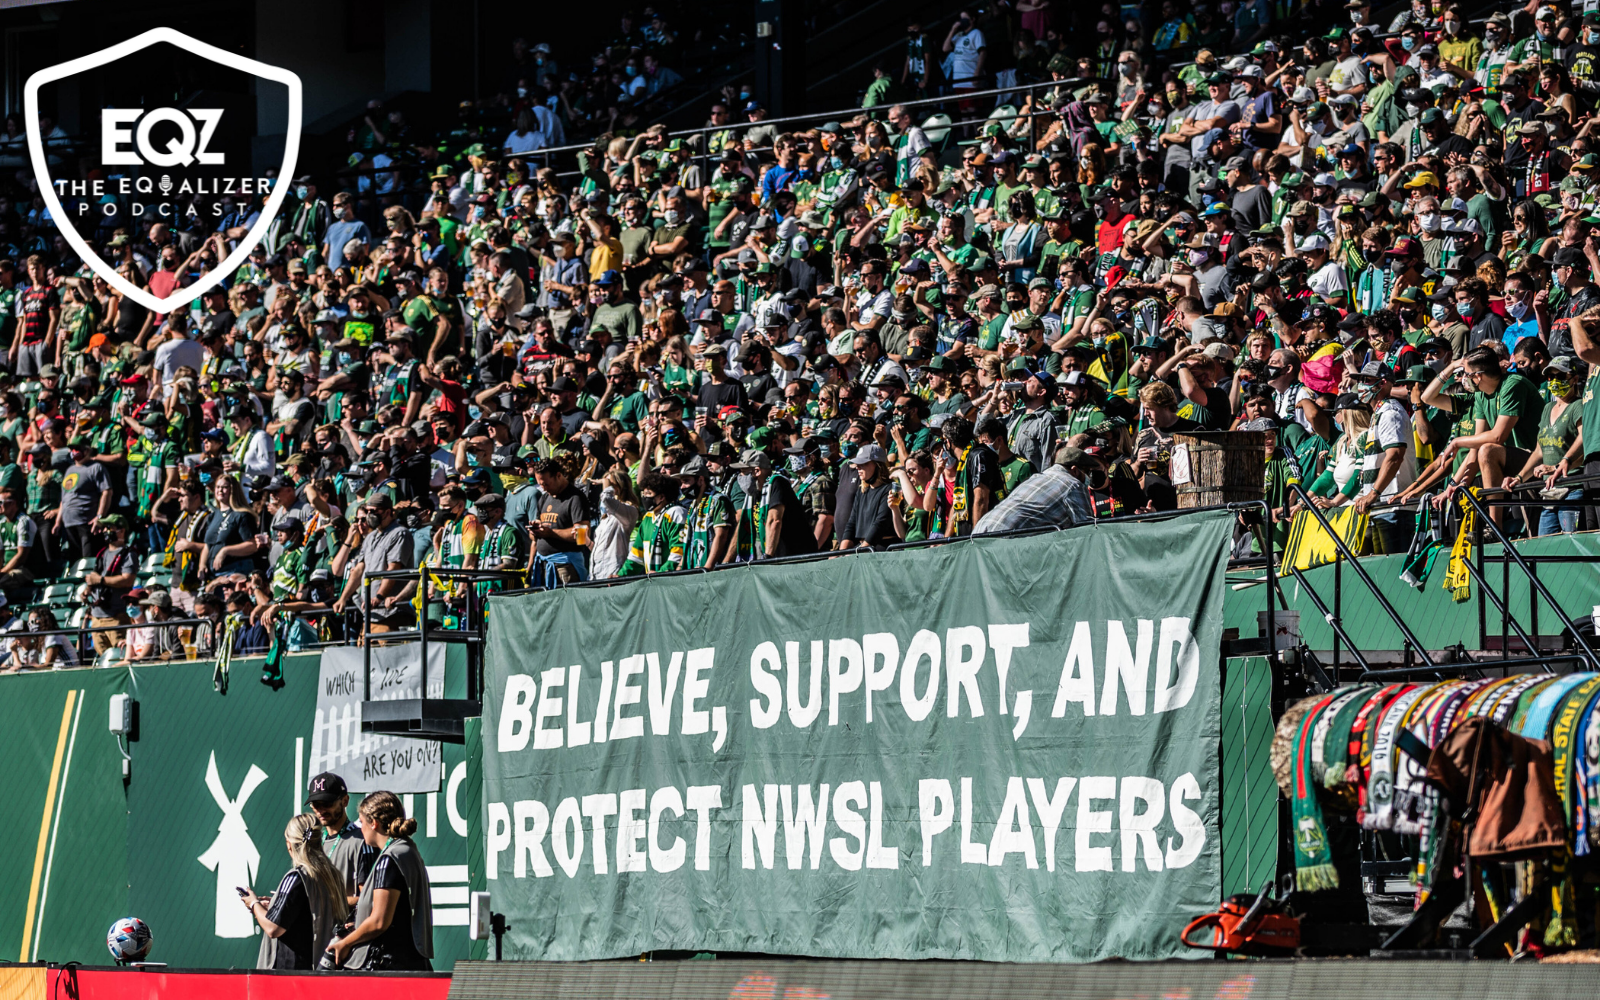 """Large banner at Portland Timbers game that reads: """"Believe, Support, and Protect NWSL Players"""""""